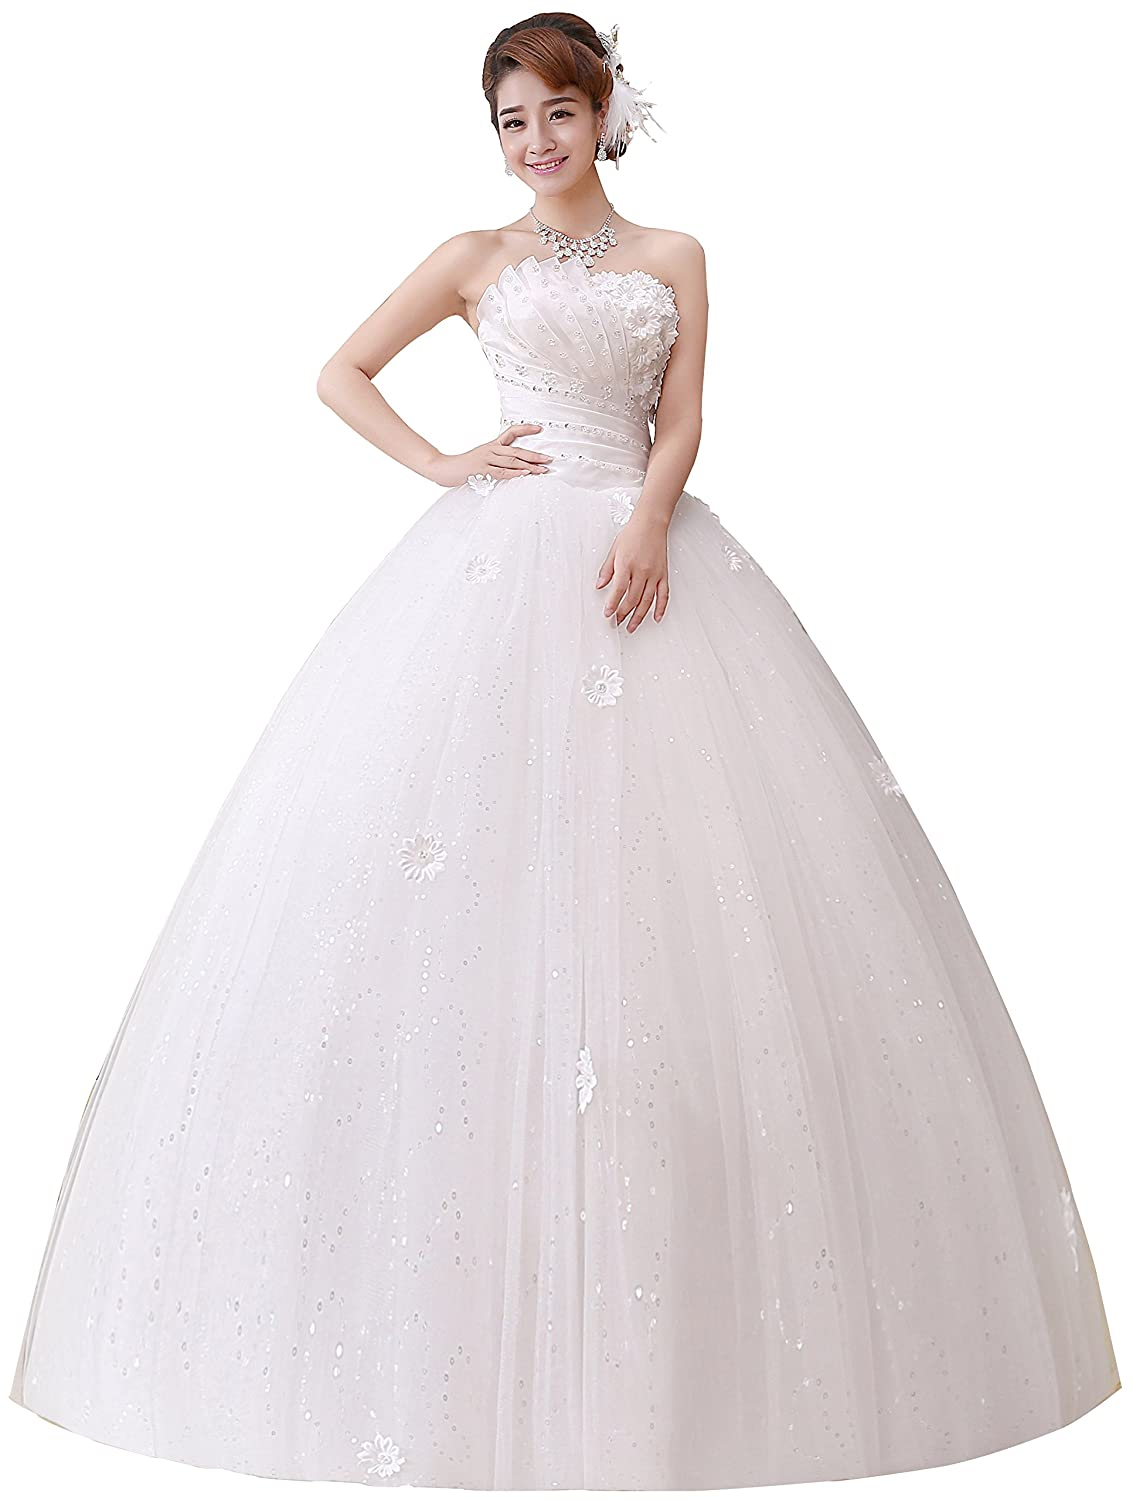 Clover Bridal 2017 Strapless Applique Beaded Pleats Ball Gown Wedding Dress Ivory Pure White At Amazon Women's Clothing Store: Unique Ball Gown Wedding Dresses At Reisefeber.org